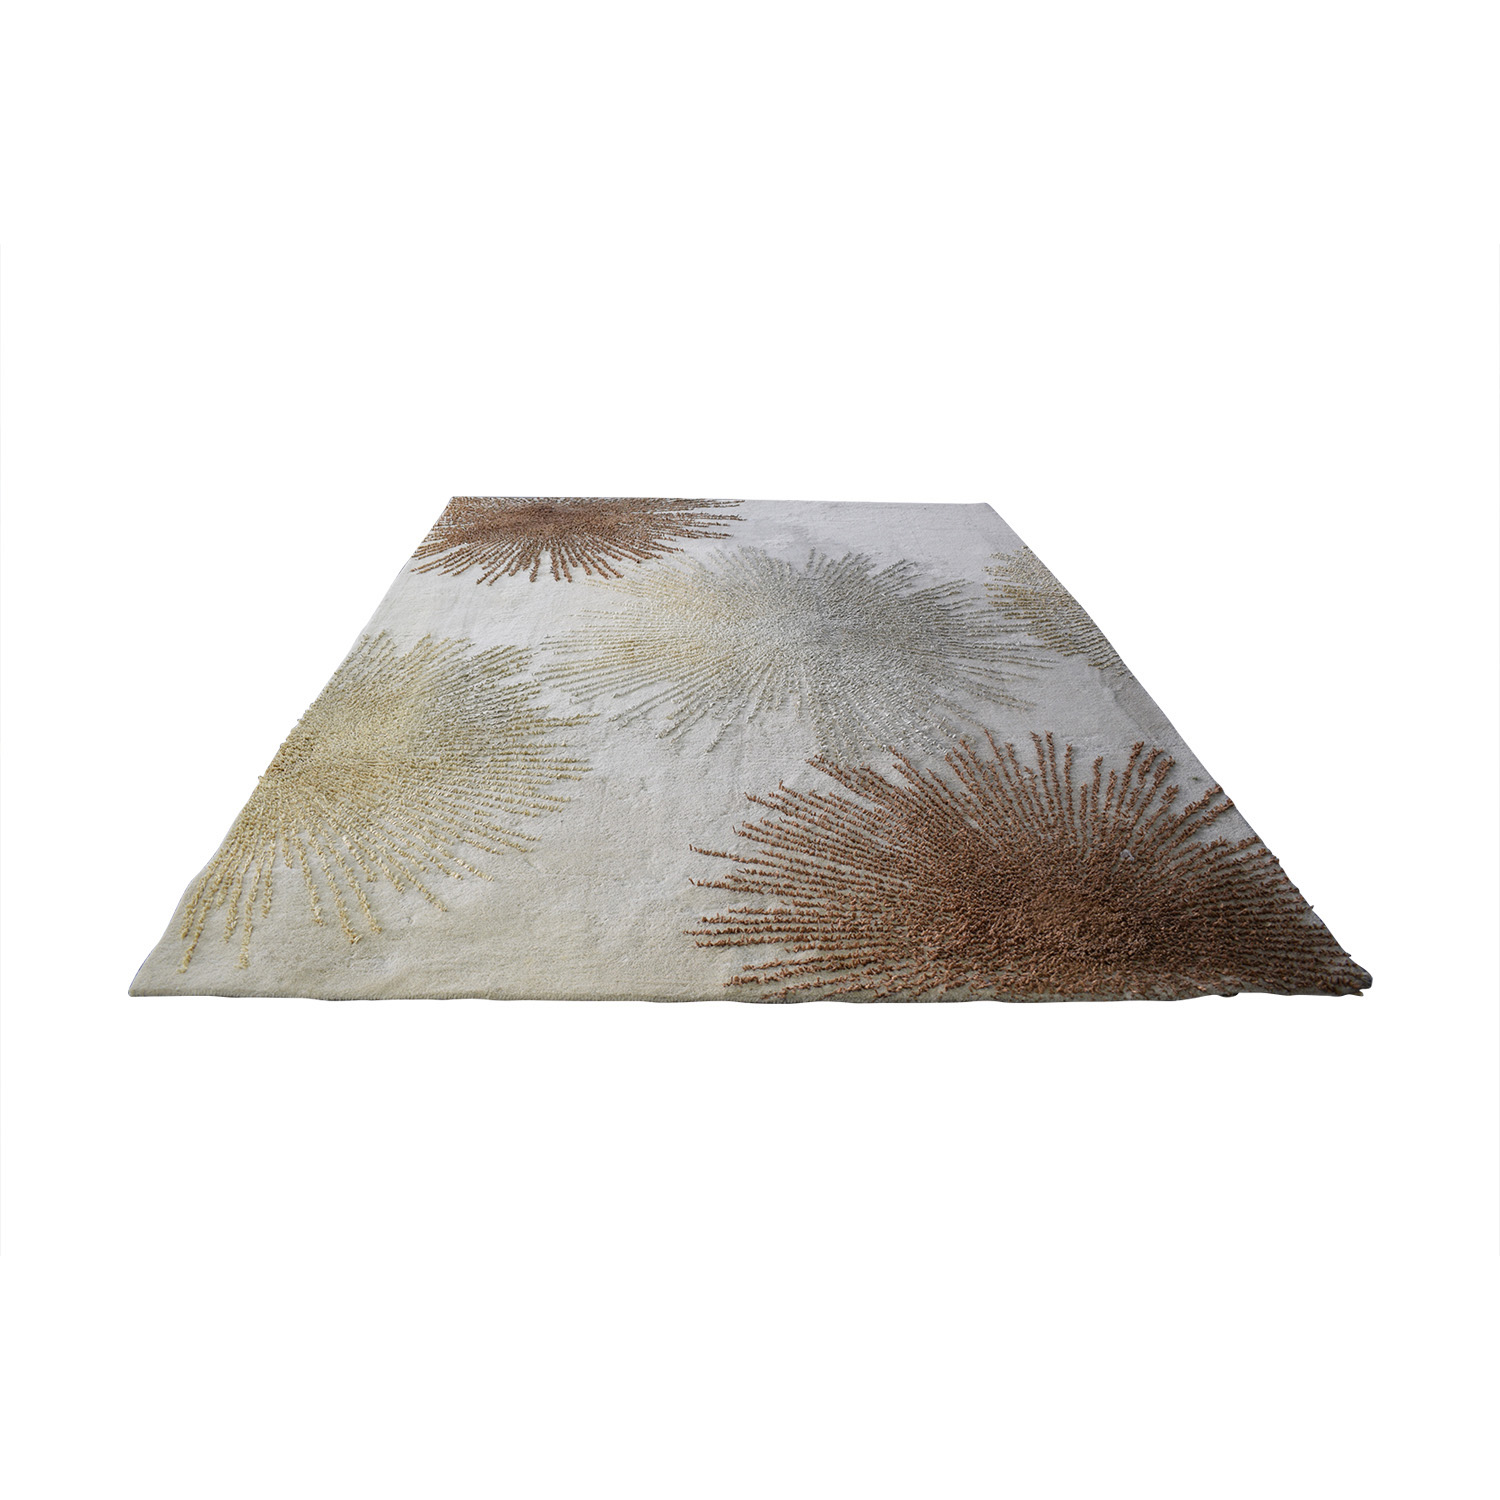 Safavieh Safavieh Sunburst Earth Tone Rug coupon